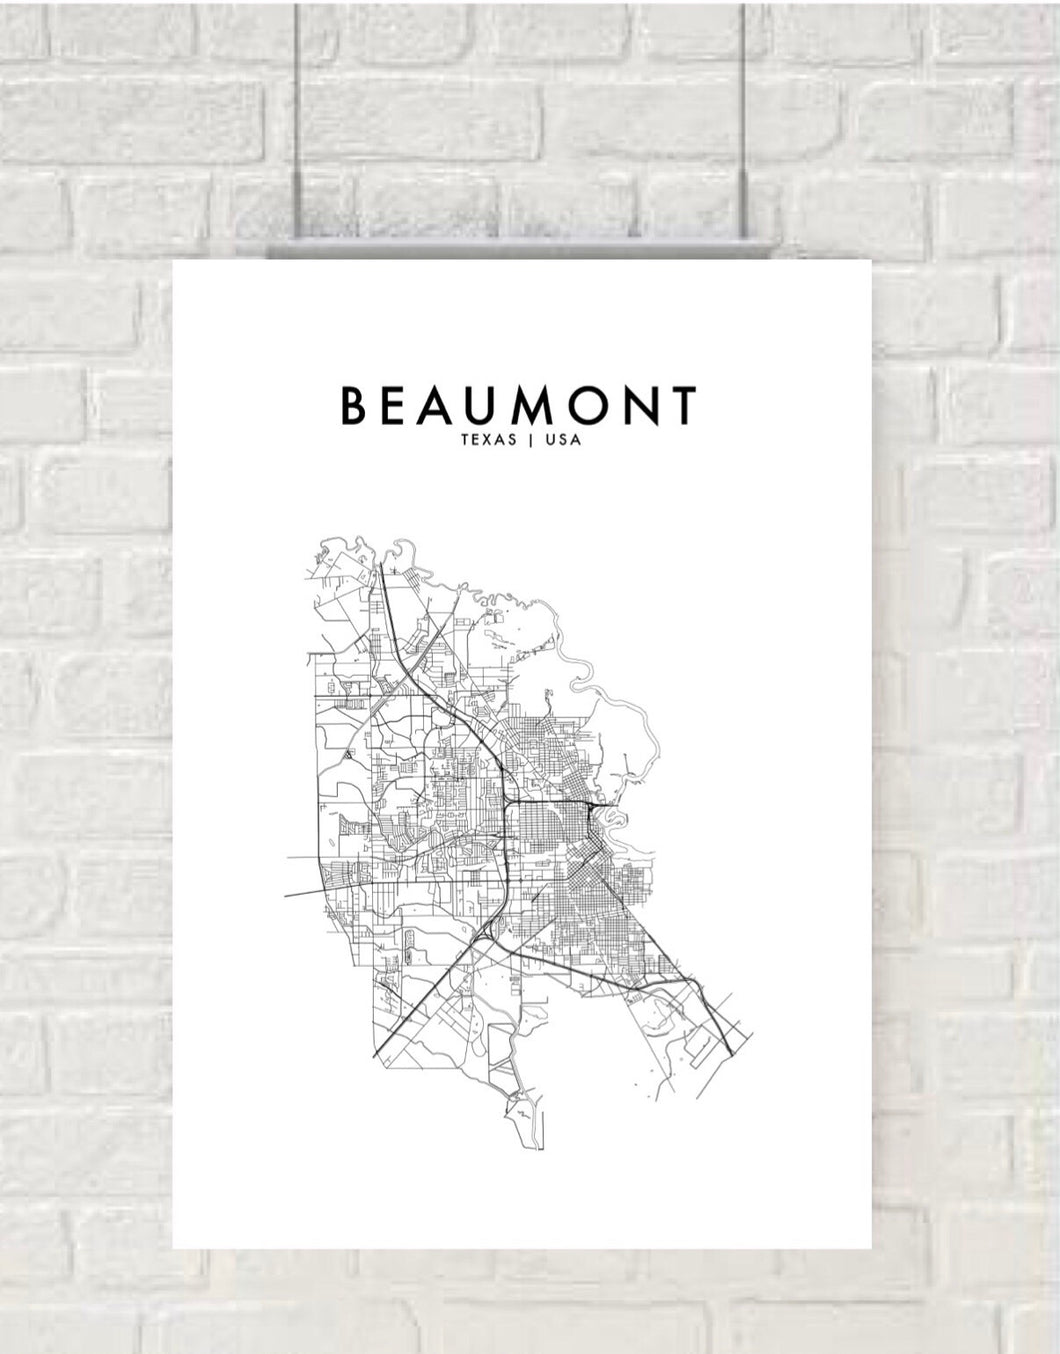 BEAUMONT, TEXAS, USA HOMETOWN PRINT